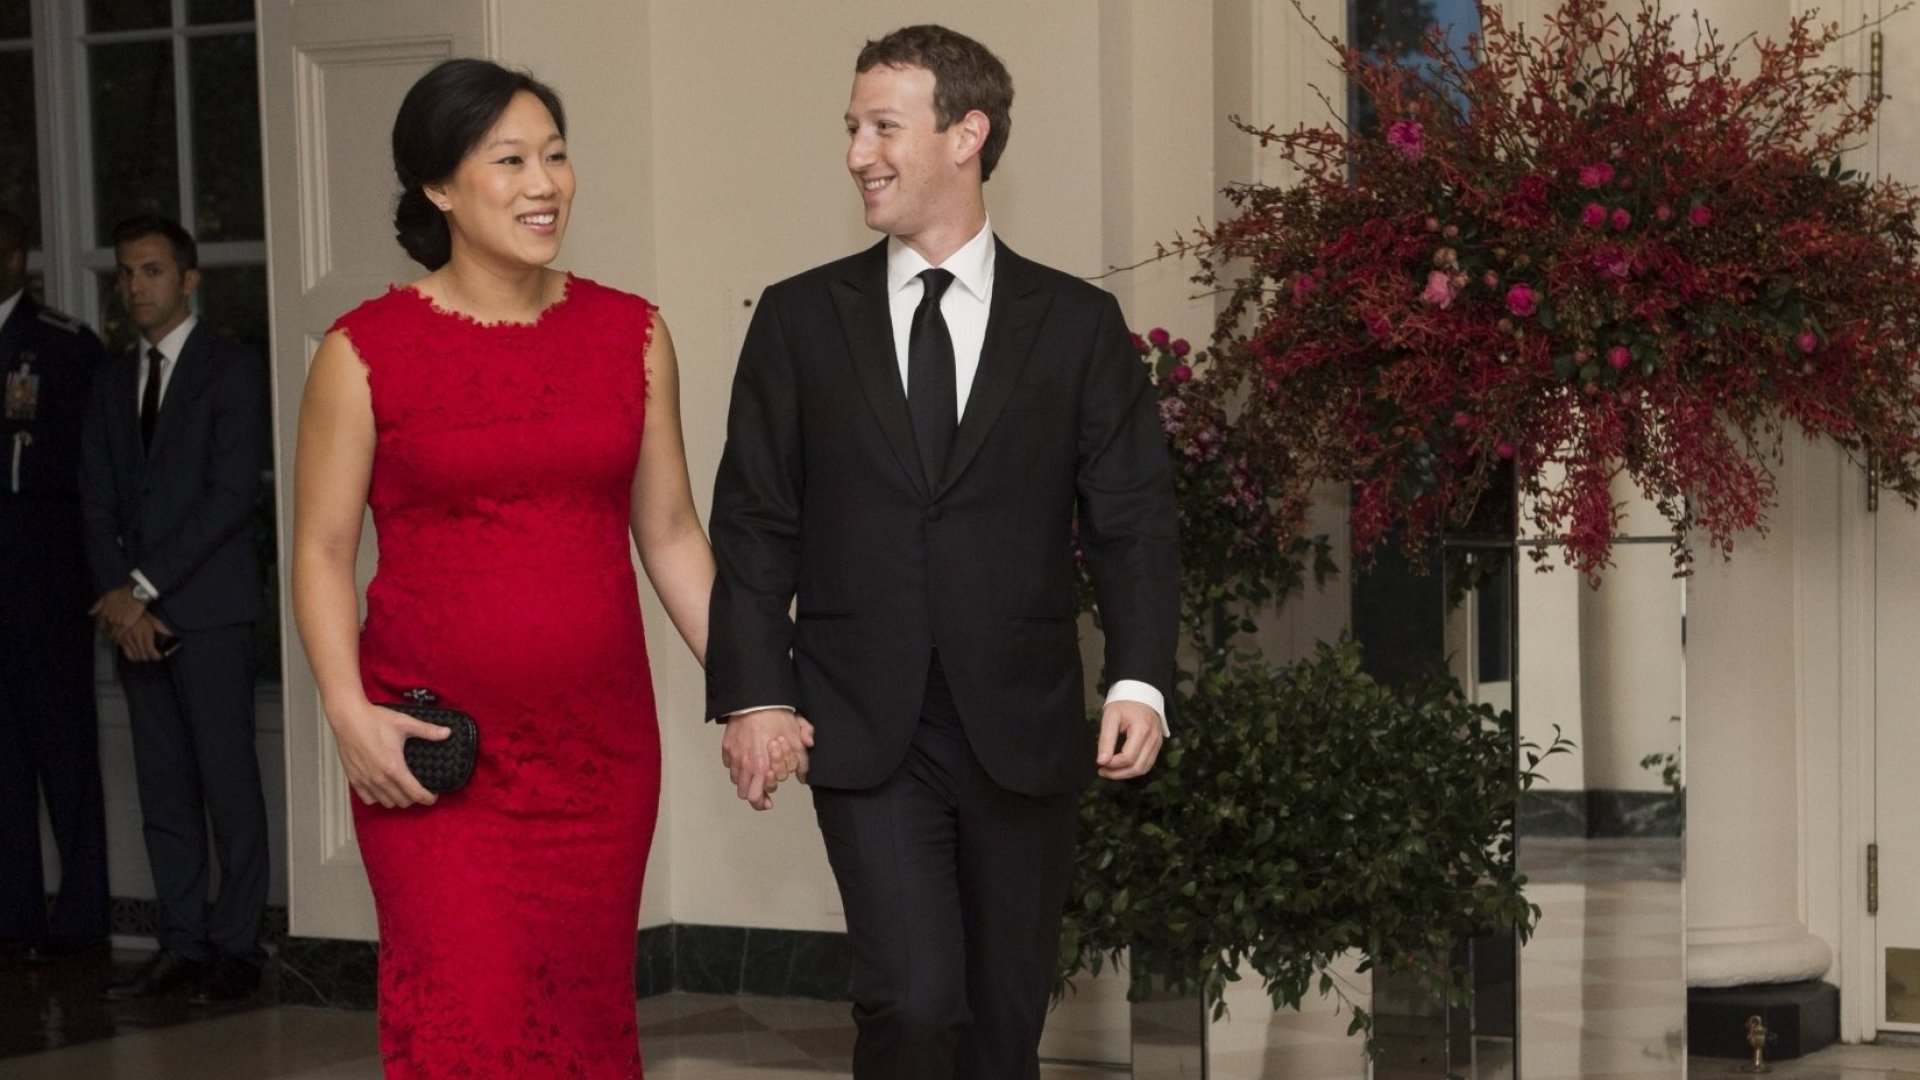 Mark Zuckerberg Plans to Take 2 Months of Paternity Leave